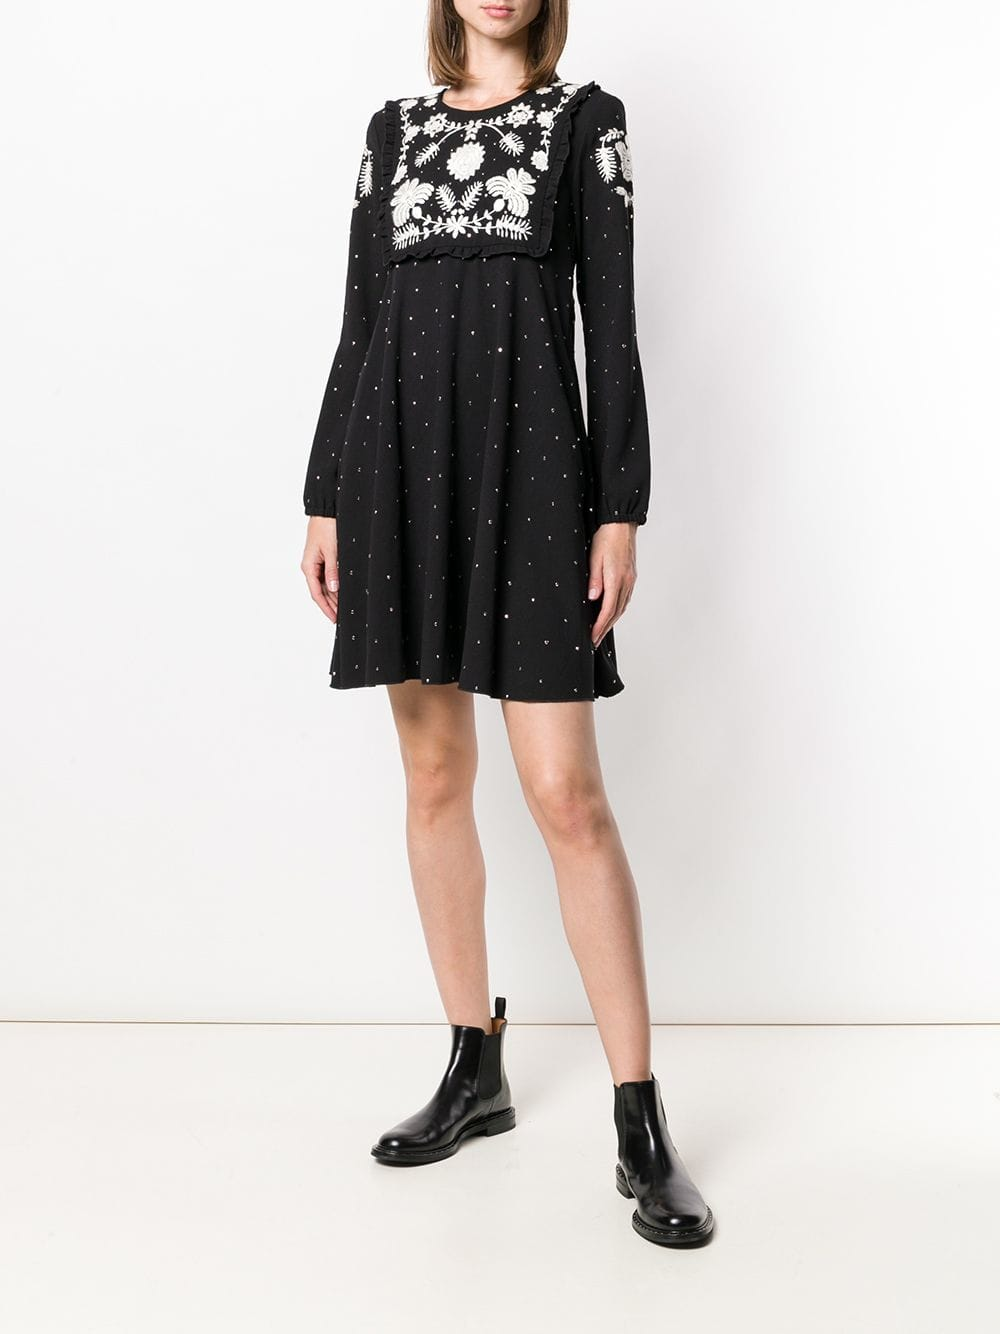 RED VALENTINO Embroidered Knit Black Dress